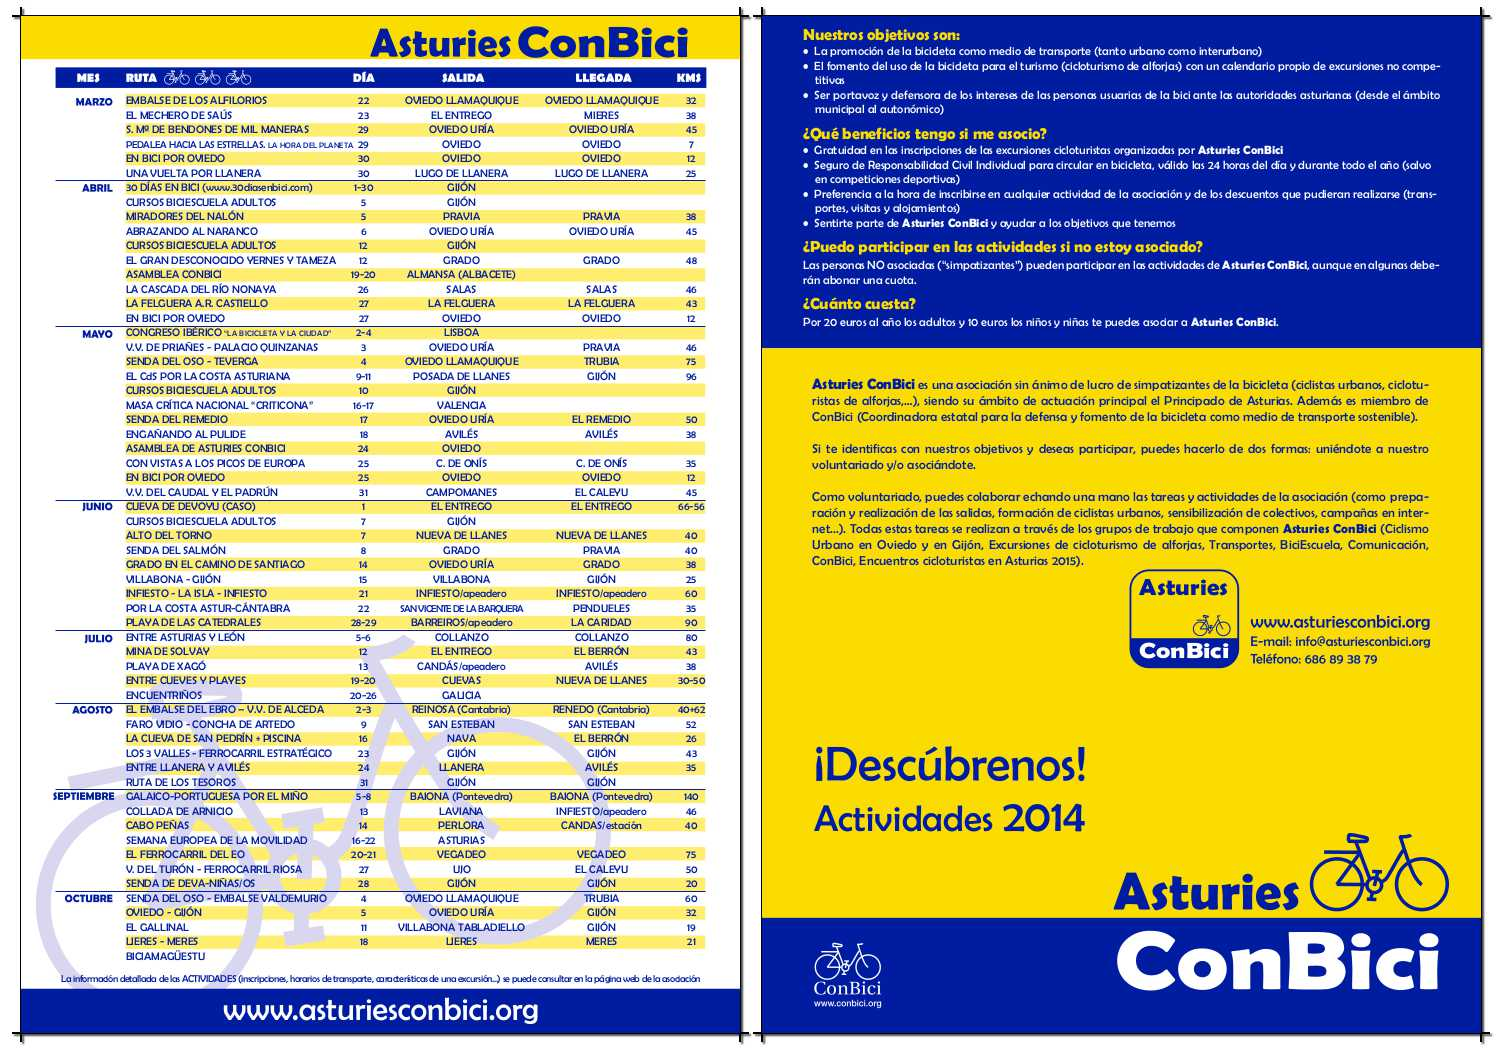 2014-Folleto-Asturies-ConBici